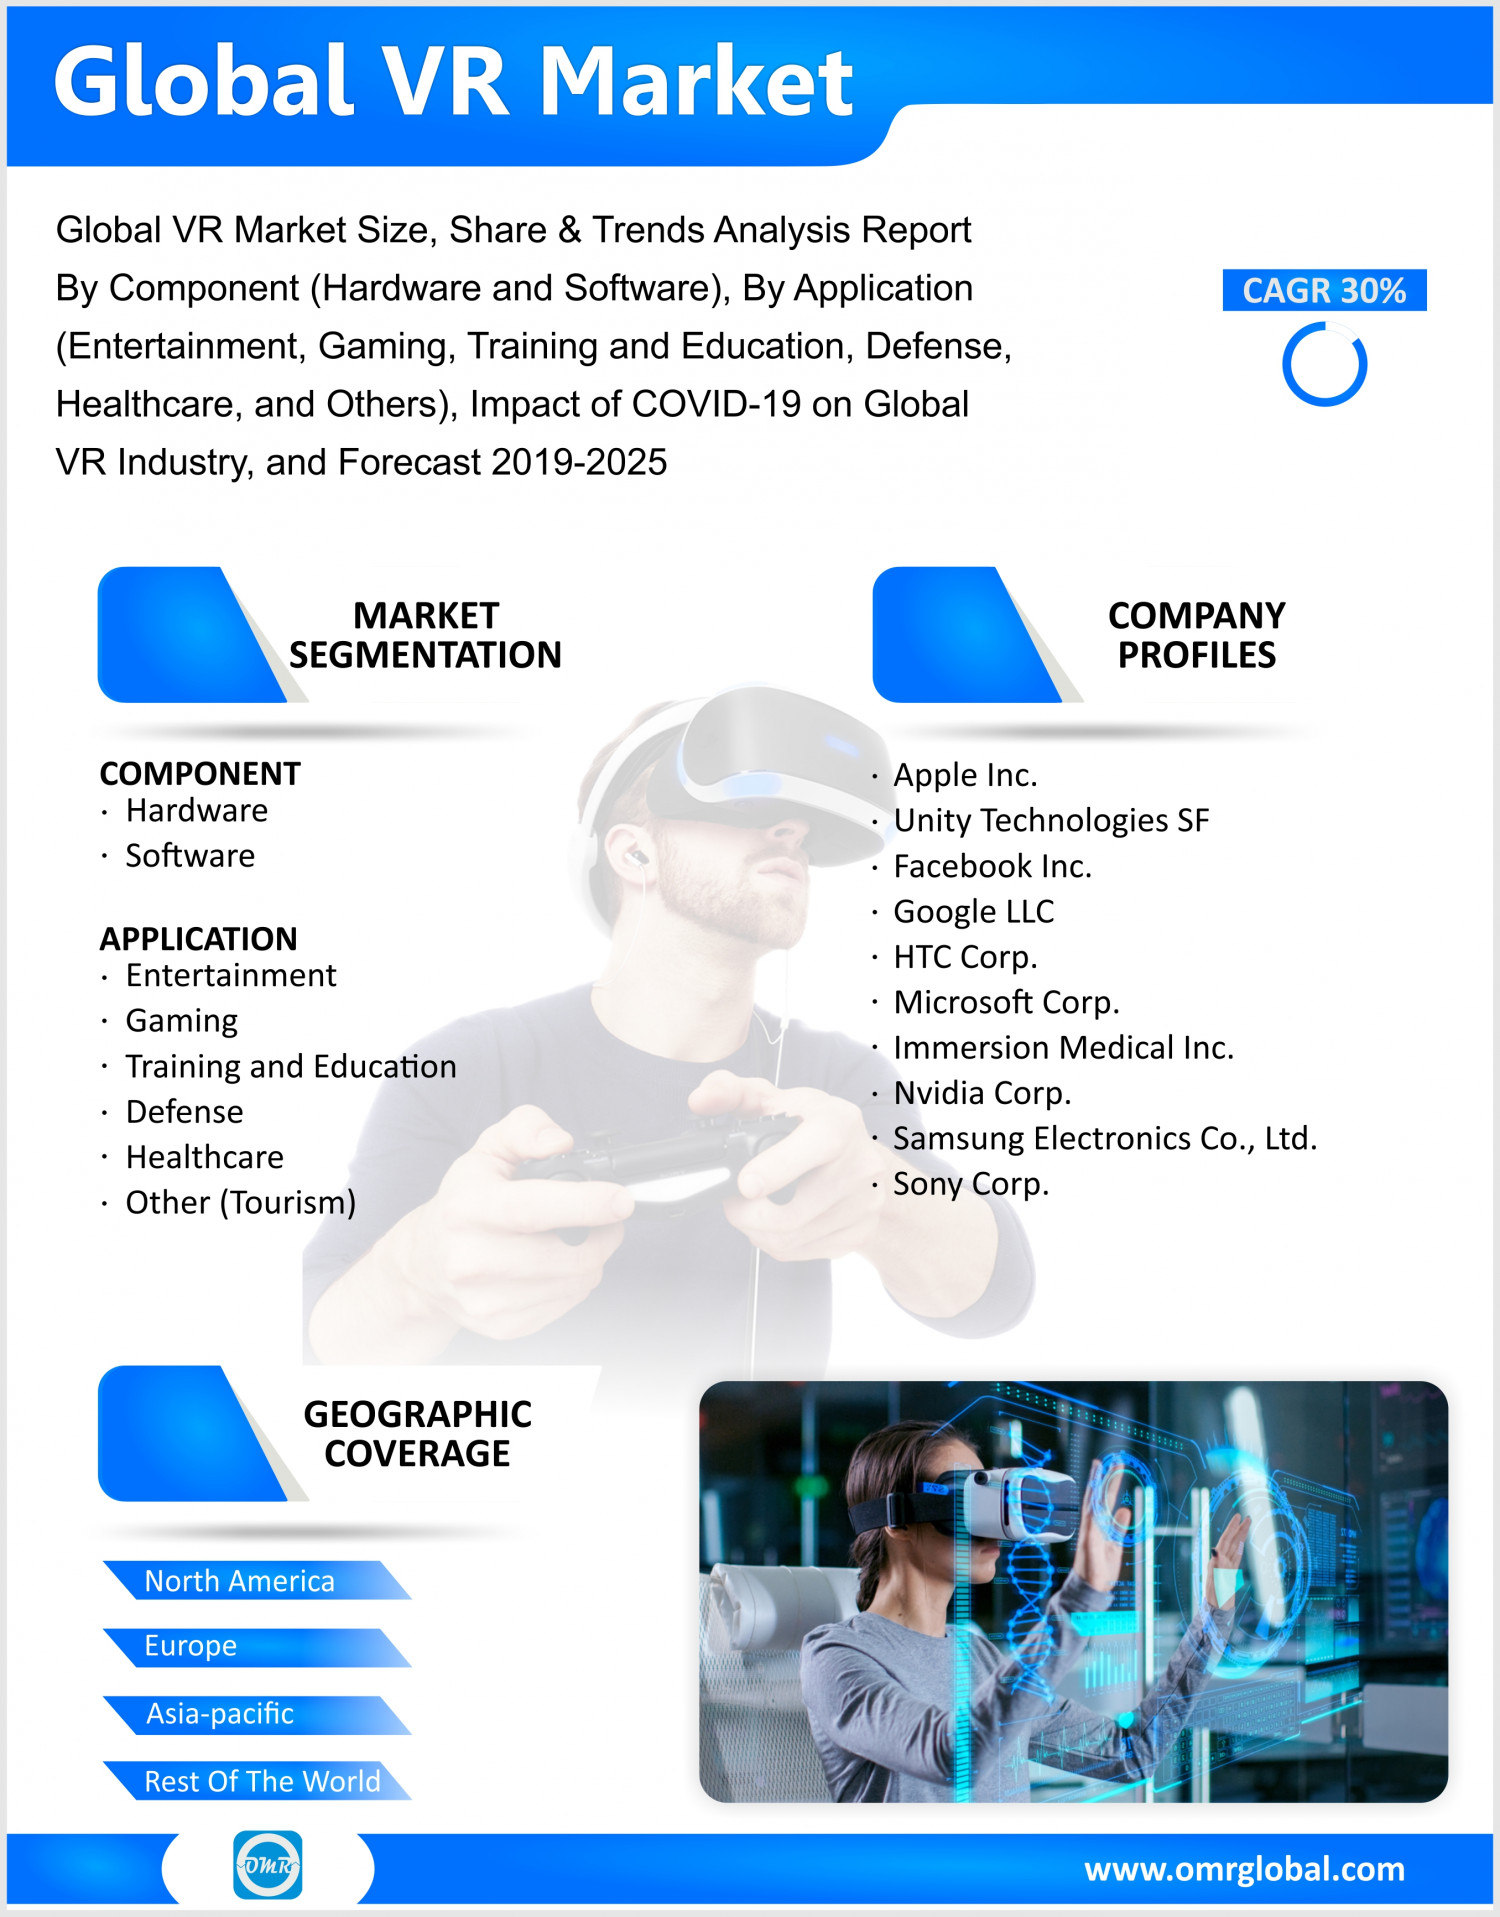 Global VR Market Analysis, Trends, Growth, Size, Share, Forecast 2019 to 2025 Infographic